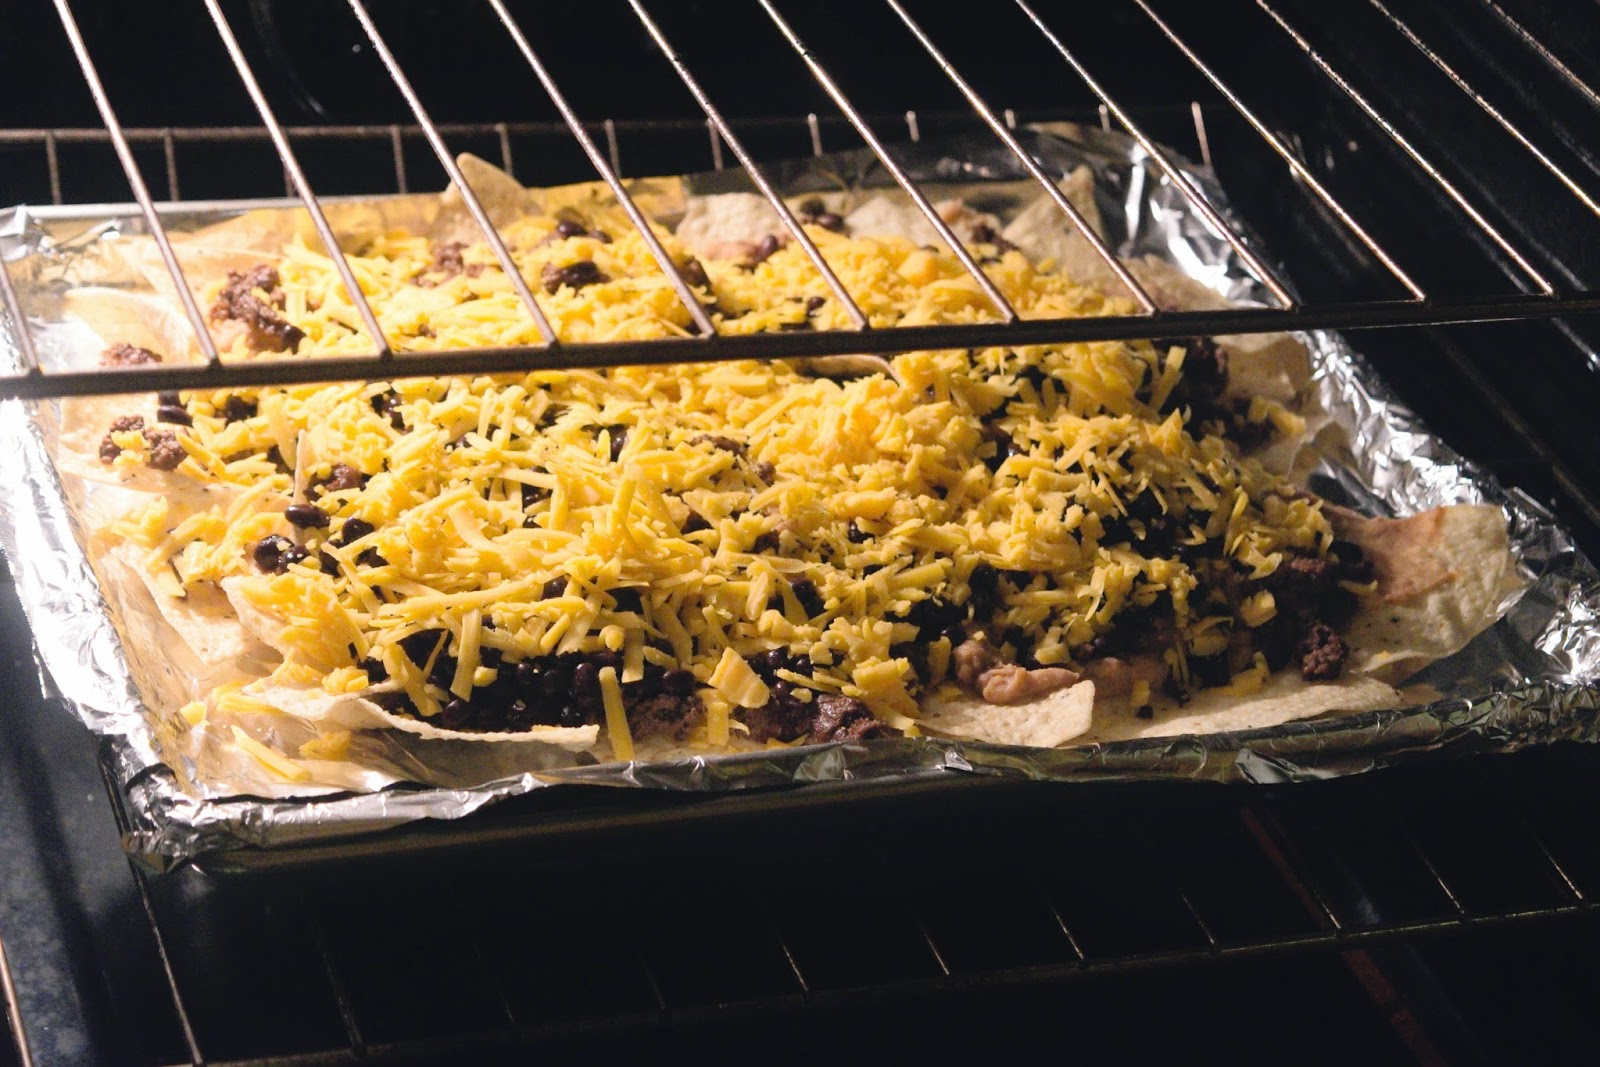 The Nachos Supreme being put in the oven to bake.